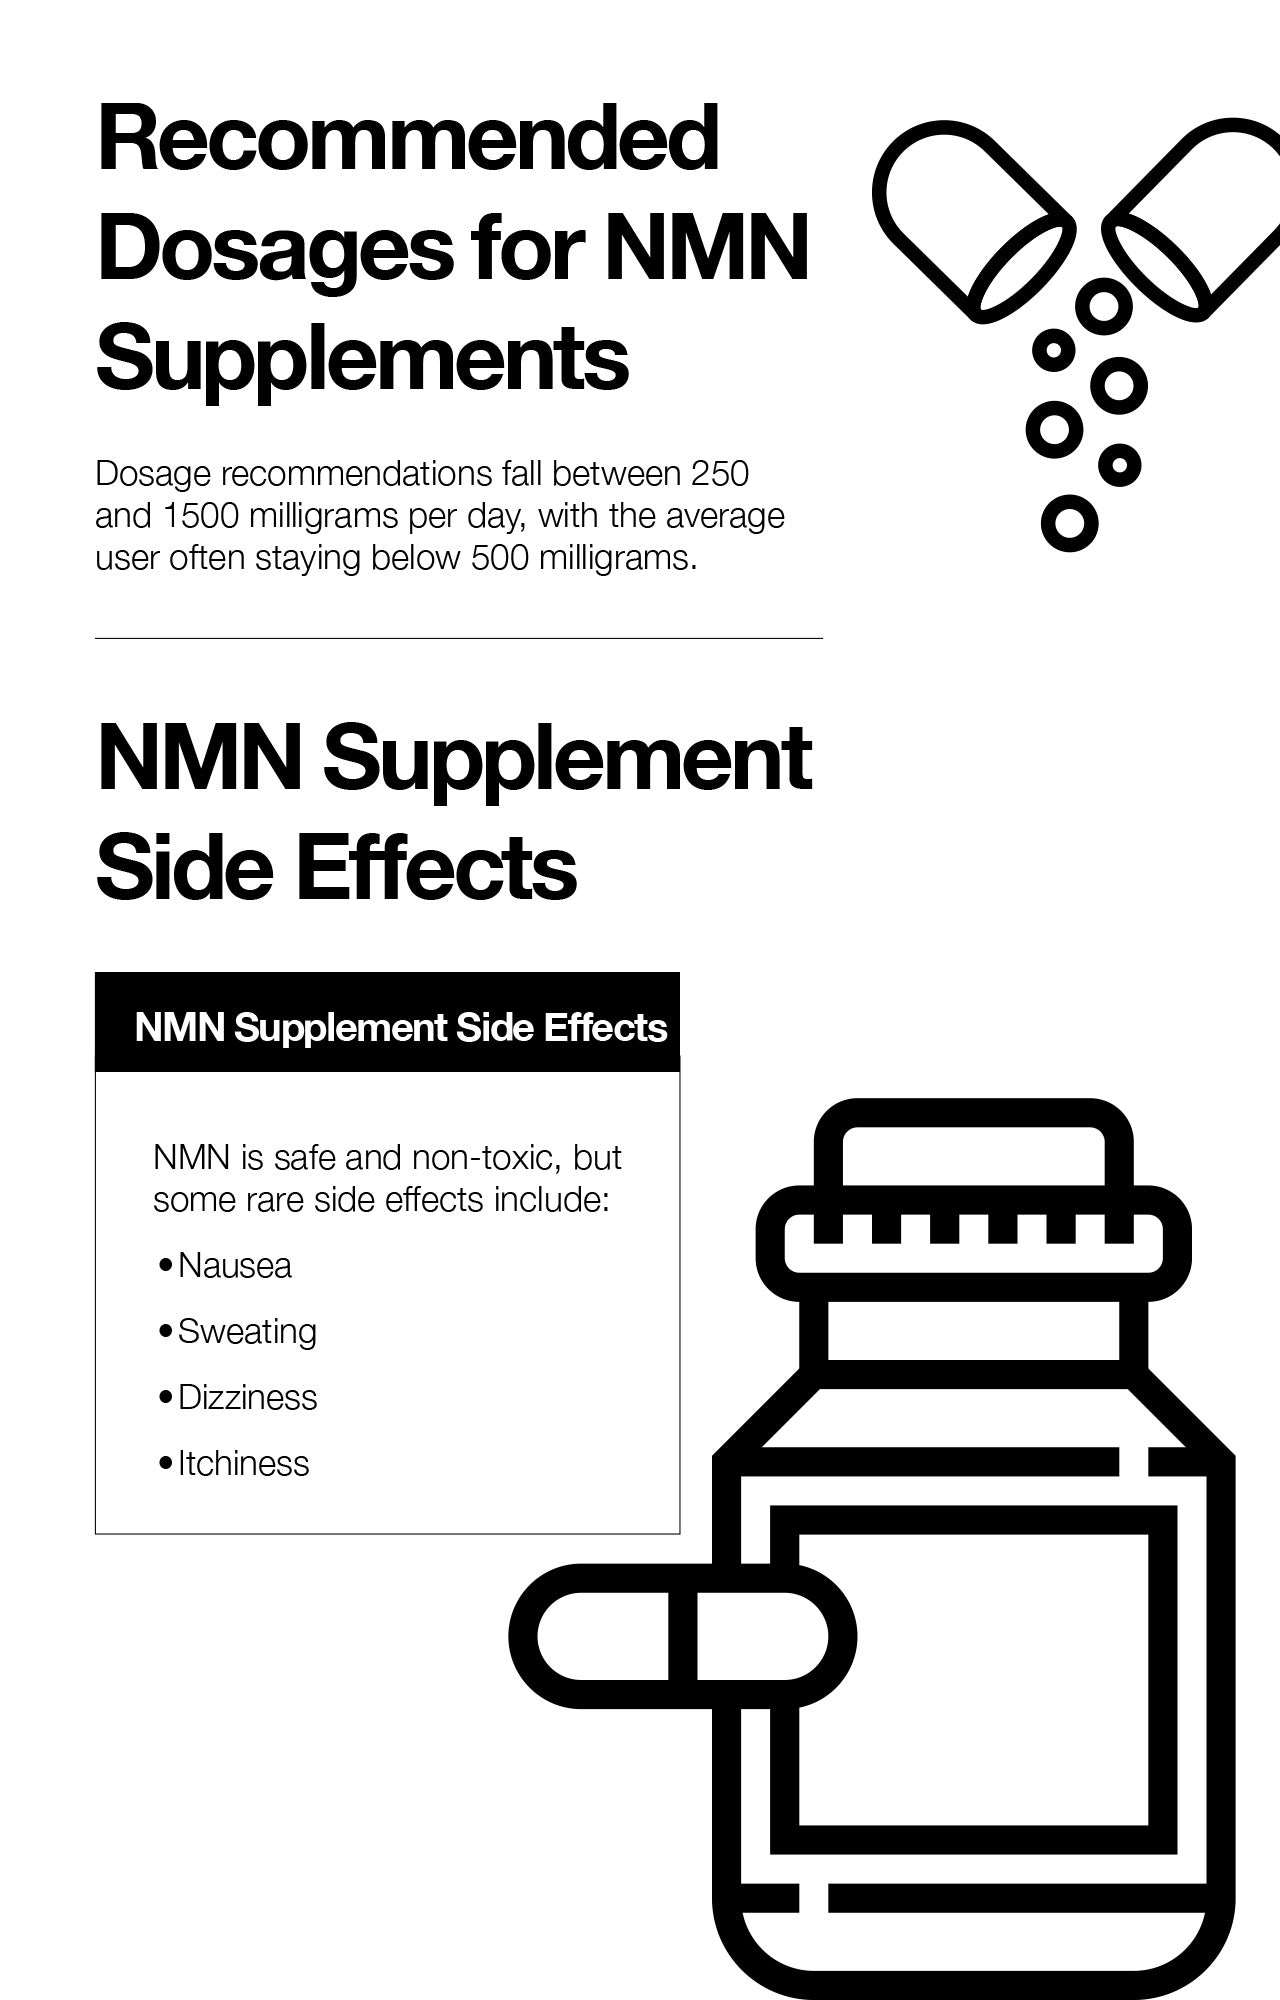 Recommended Dosages for NMN Supplements